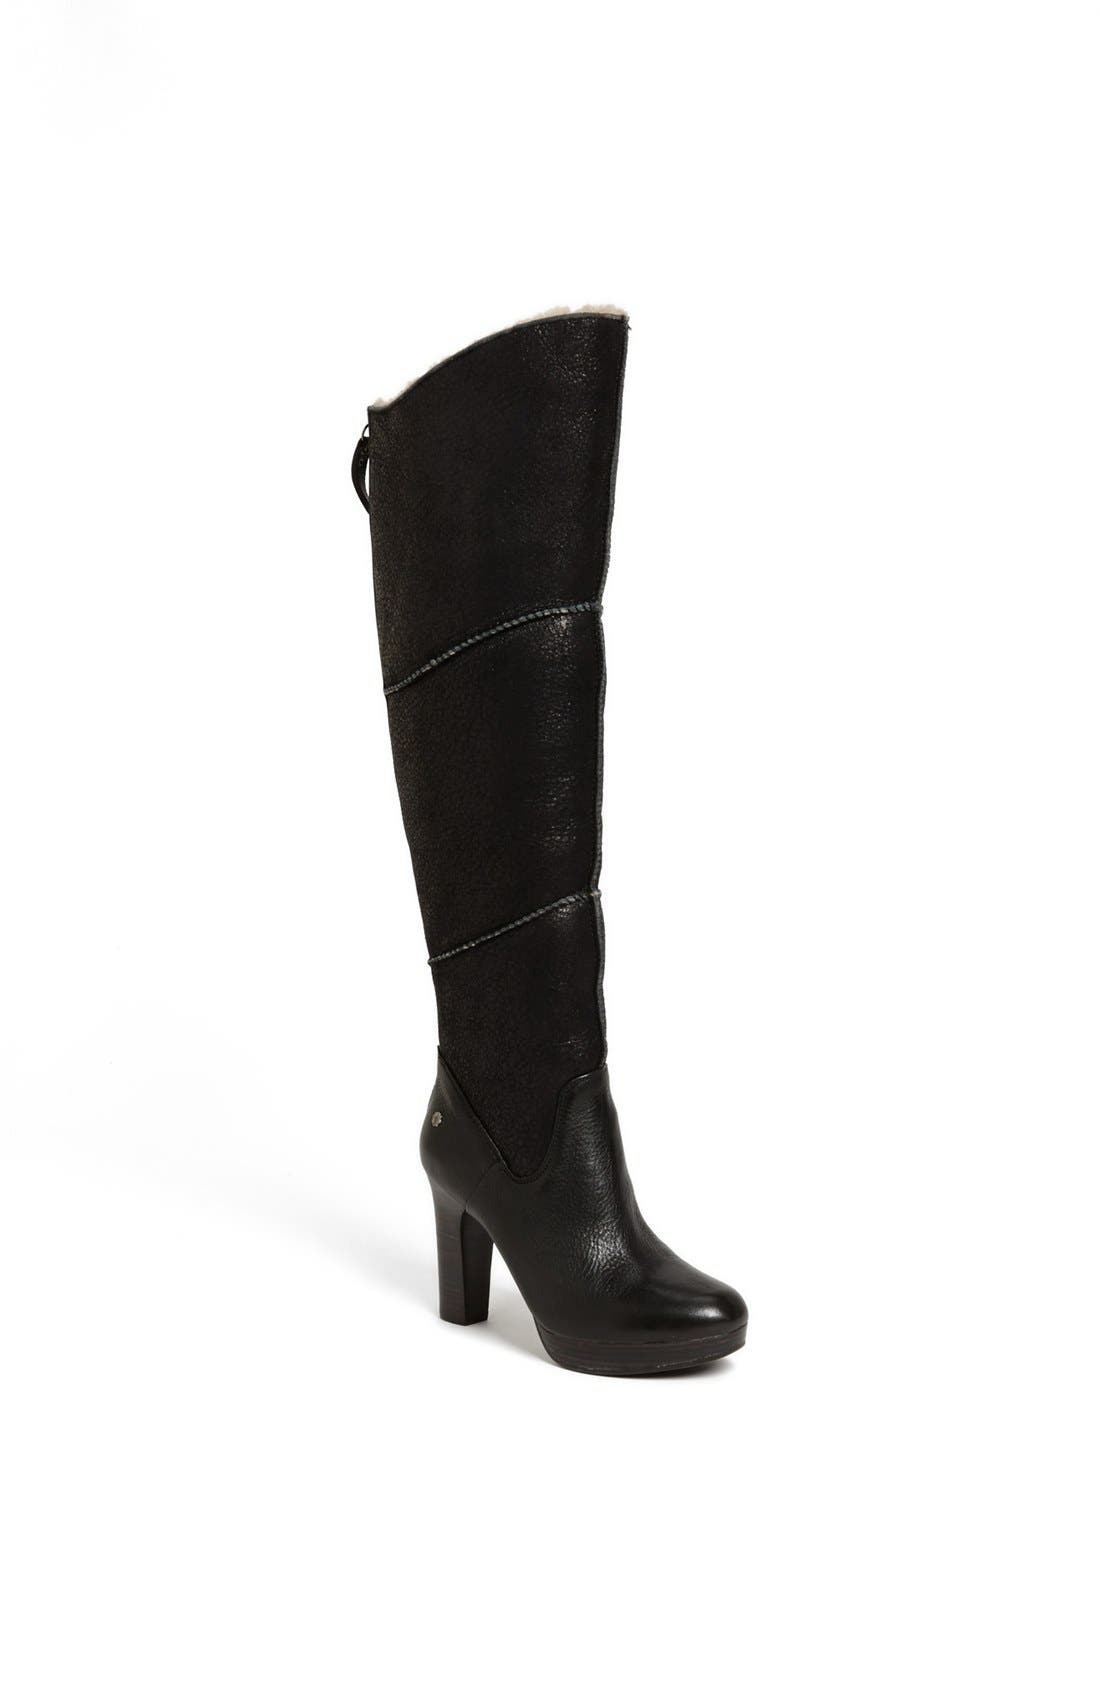 Alternate Image 1 Selected - UGG® Australia 'Dreaux' Boot (Wide Calf)